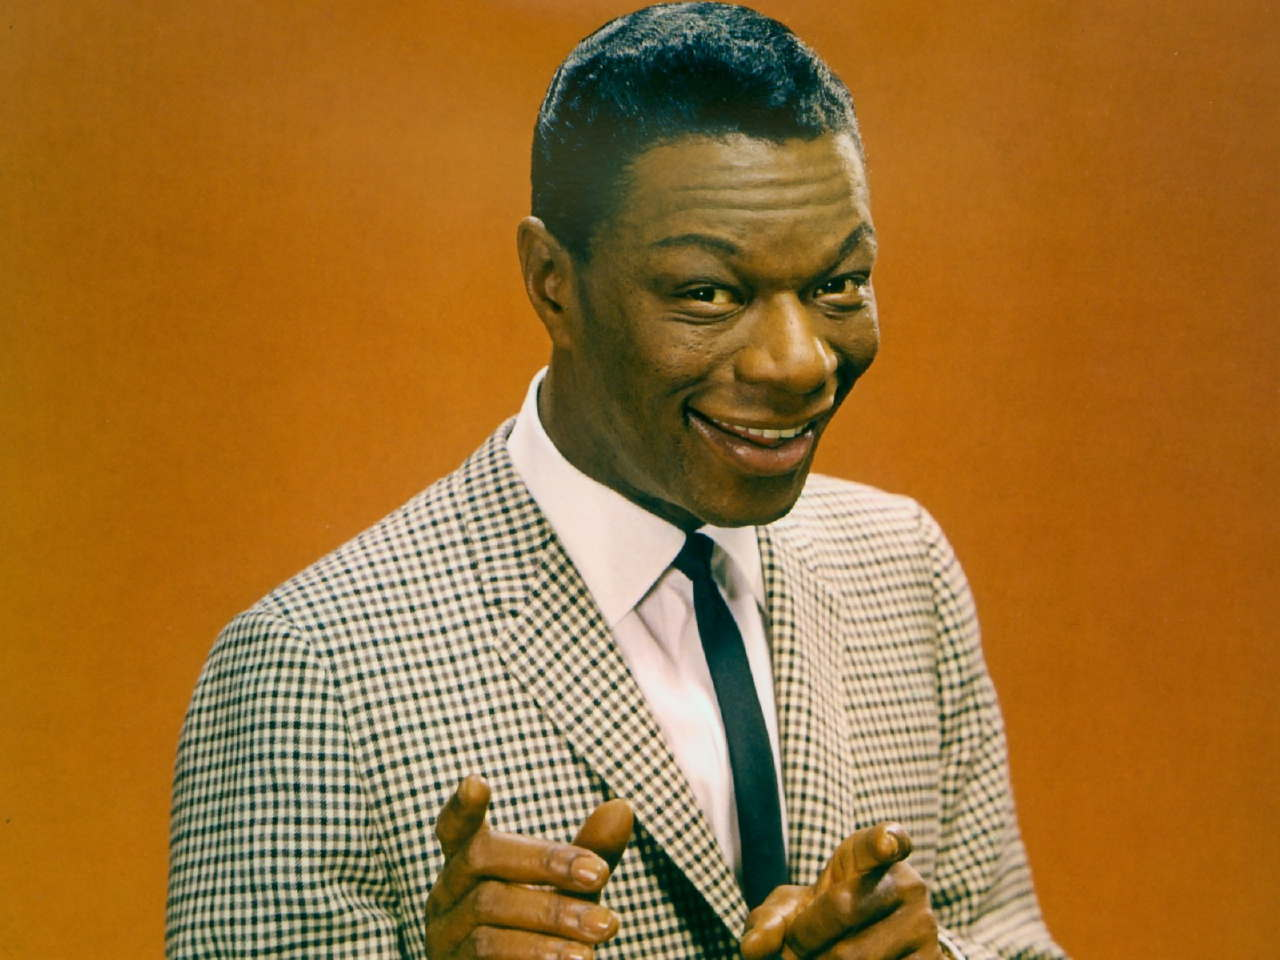 NAT KING COLE HOLIDAY SONGS 1003